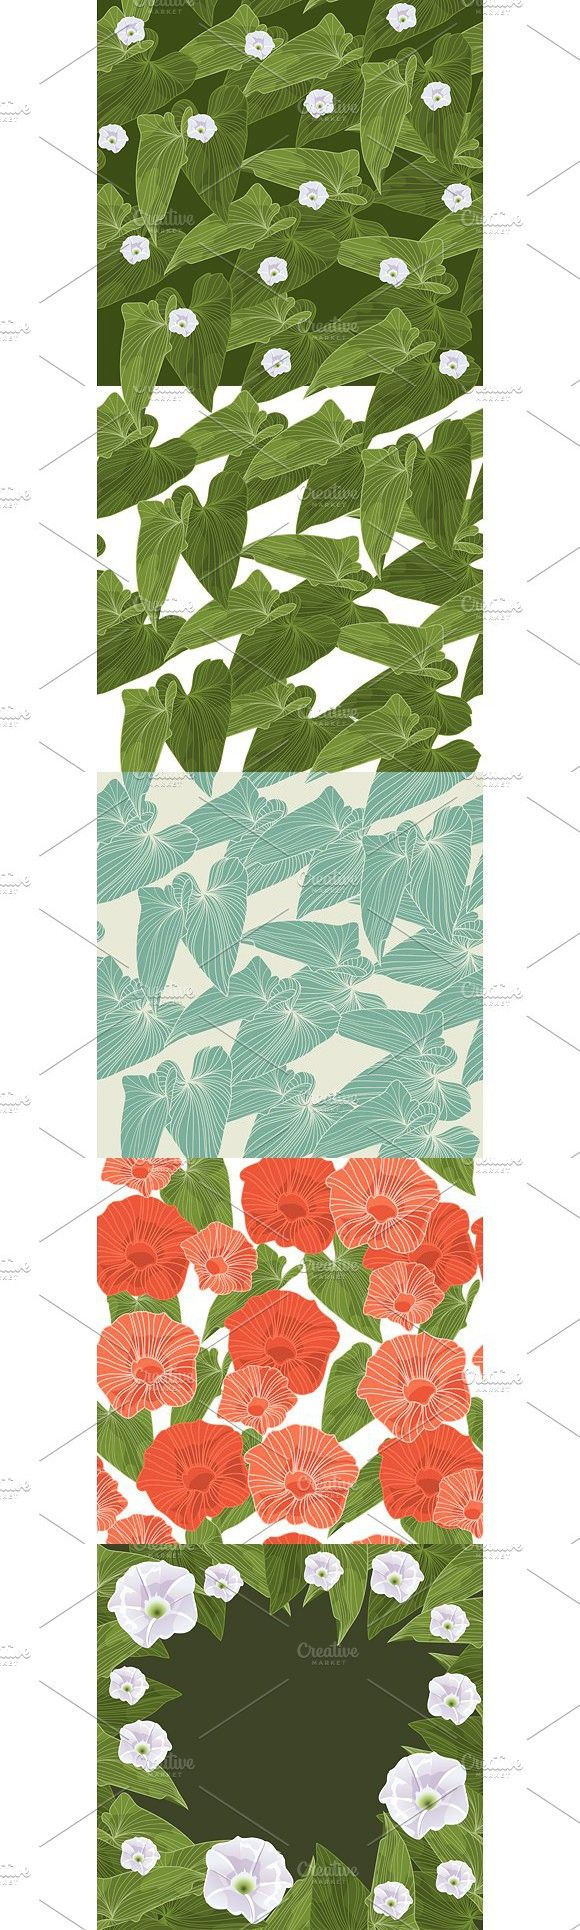 Seamless background with leaves. Patterns